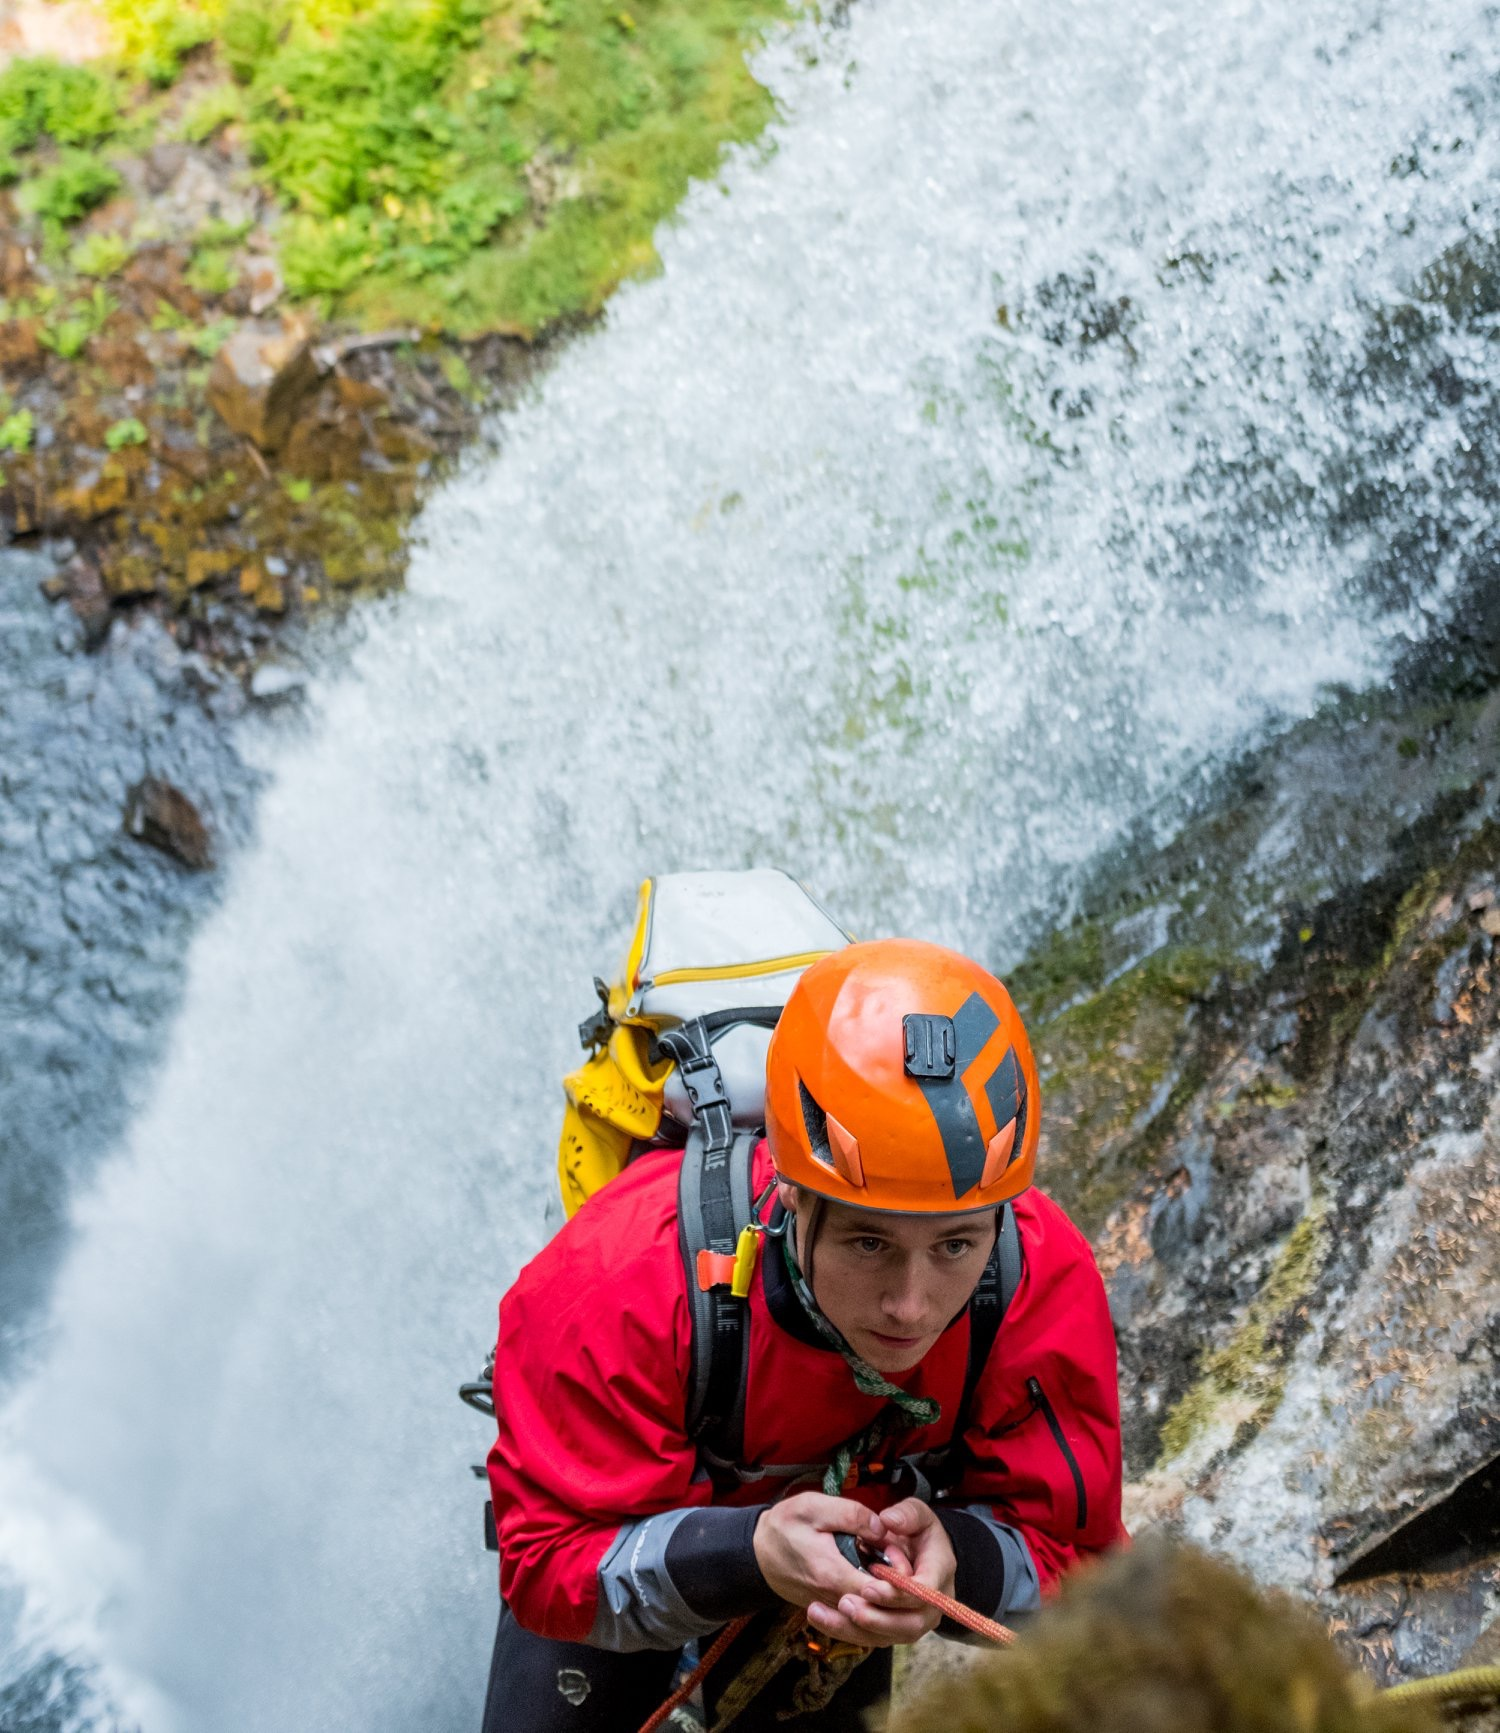 Ascending a rope in the PNW, being covered for a video project for REI. Photo by Jim Aikman.